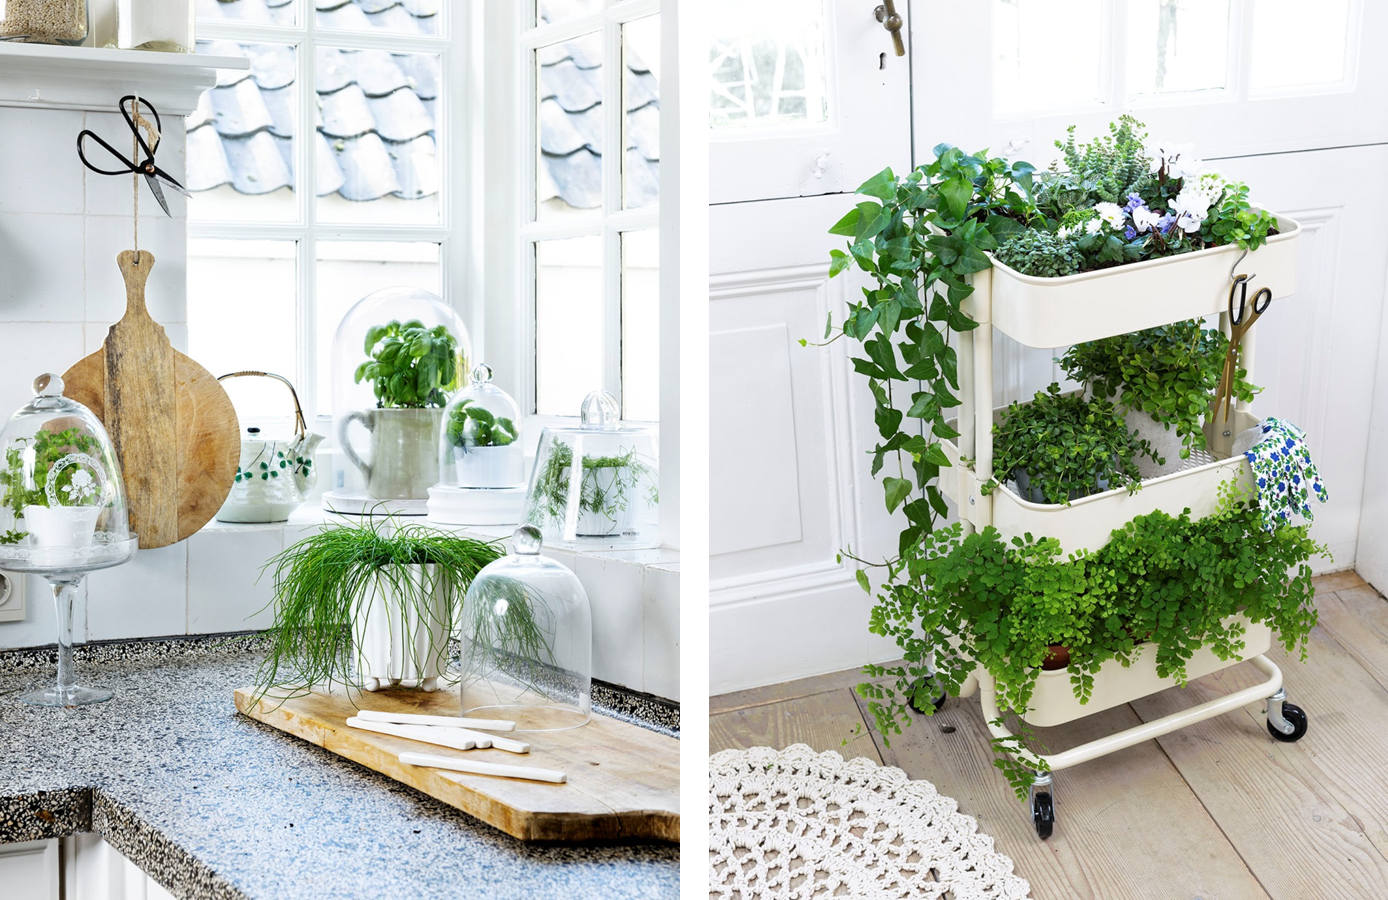 Decorar la casa con plantas de interiores for Deco para el hogar